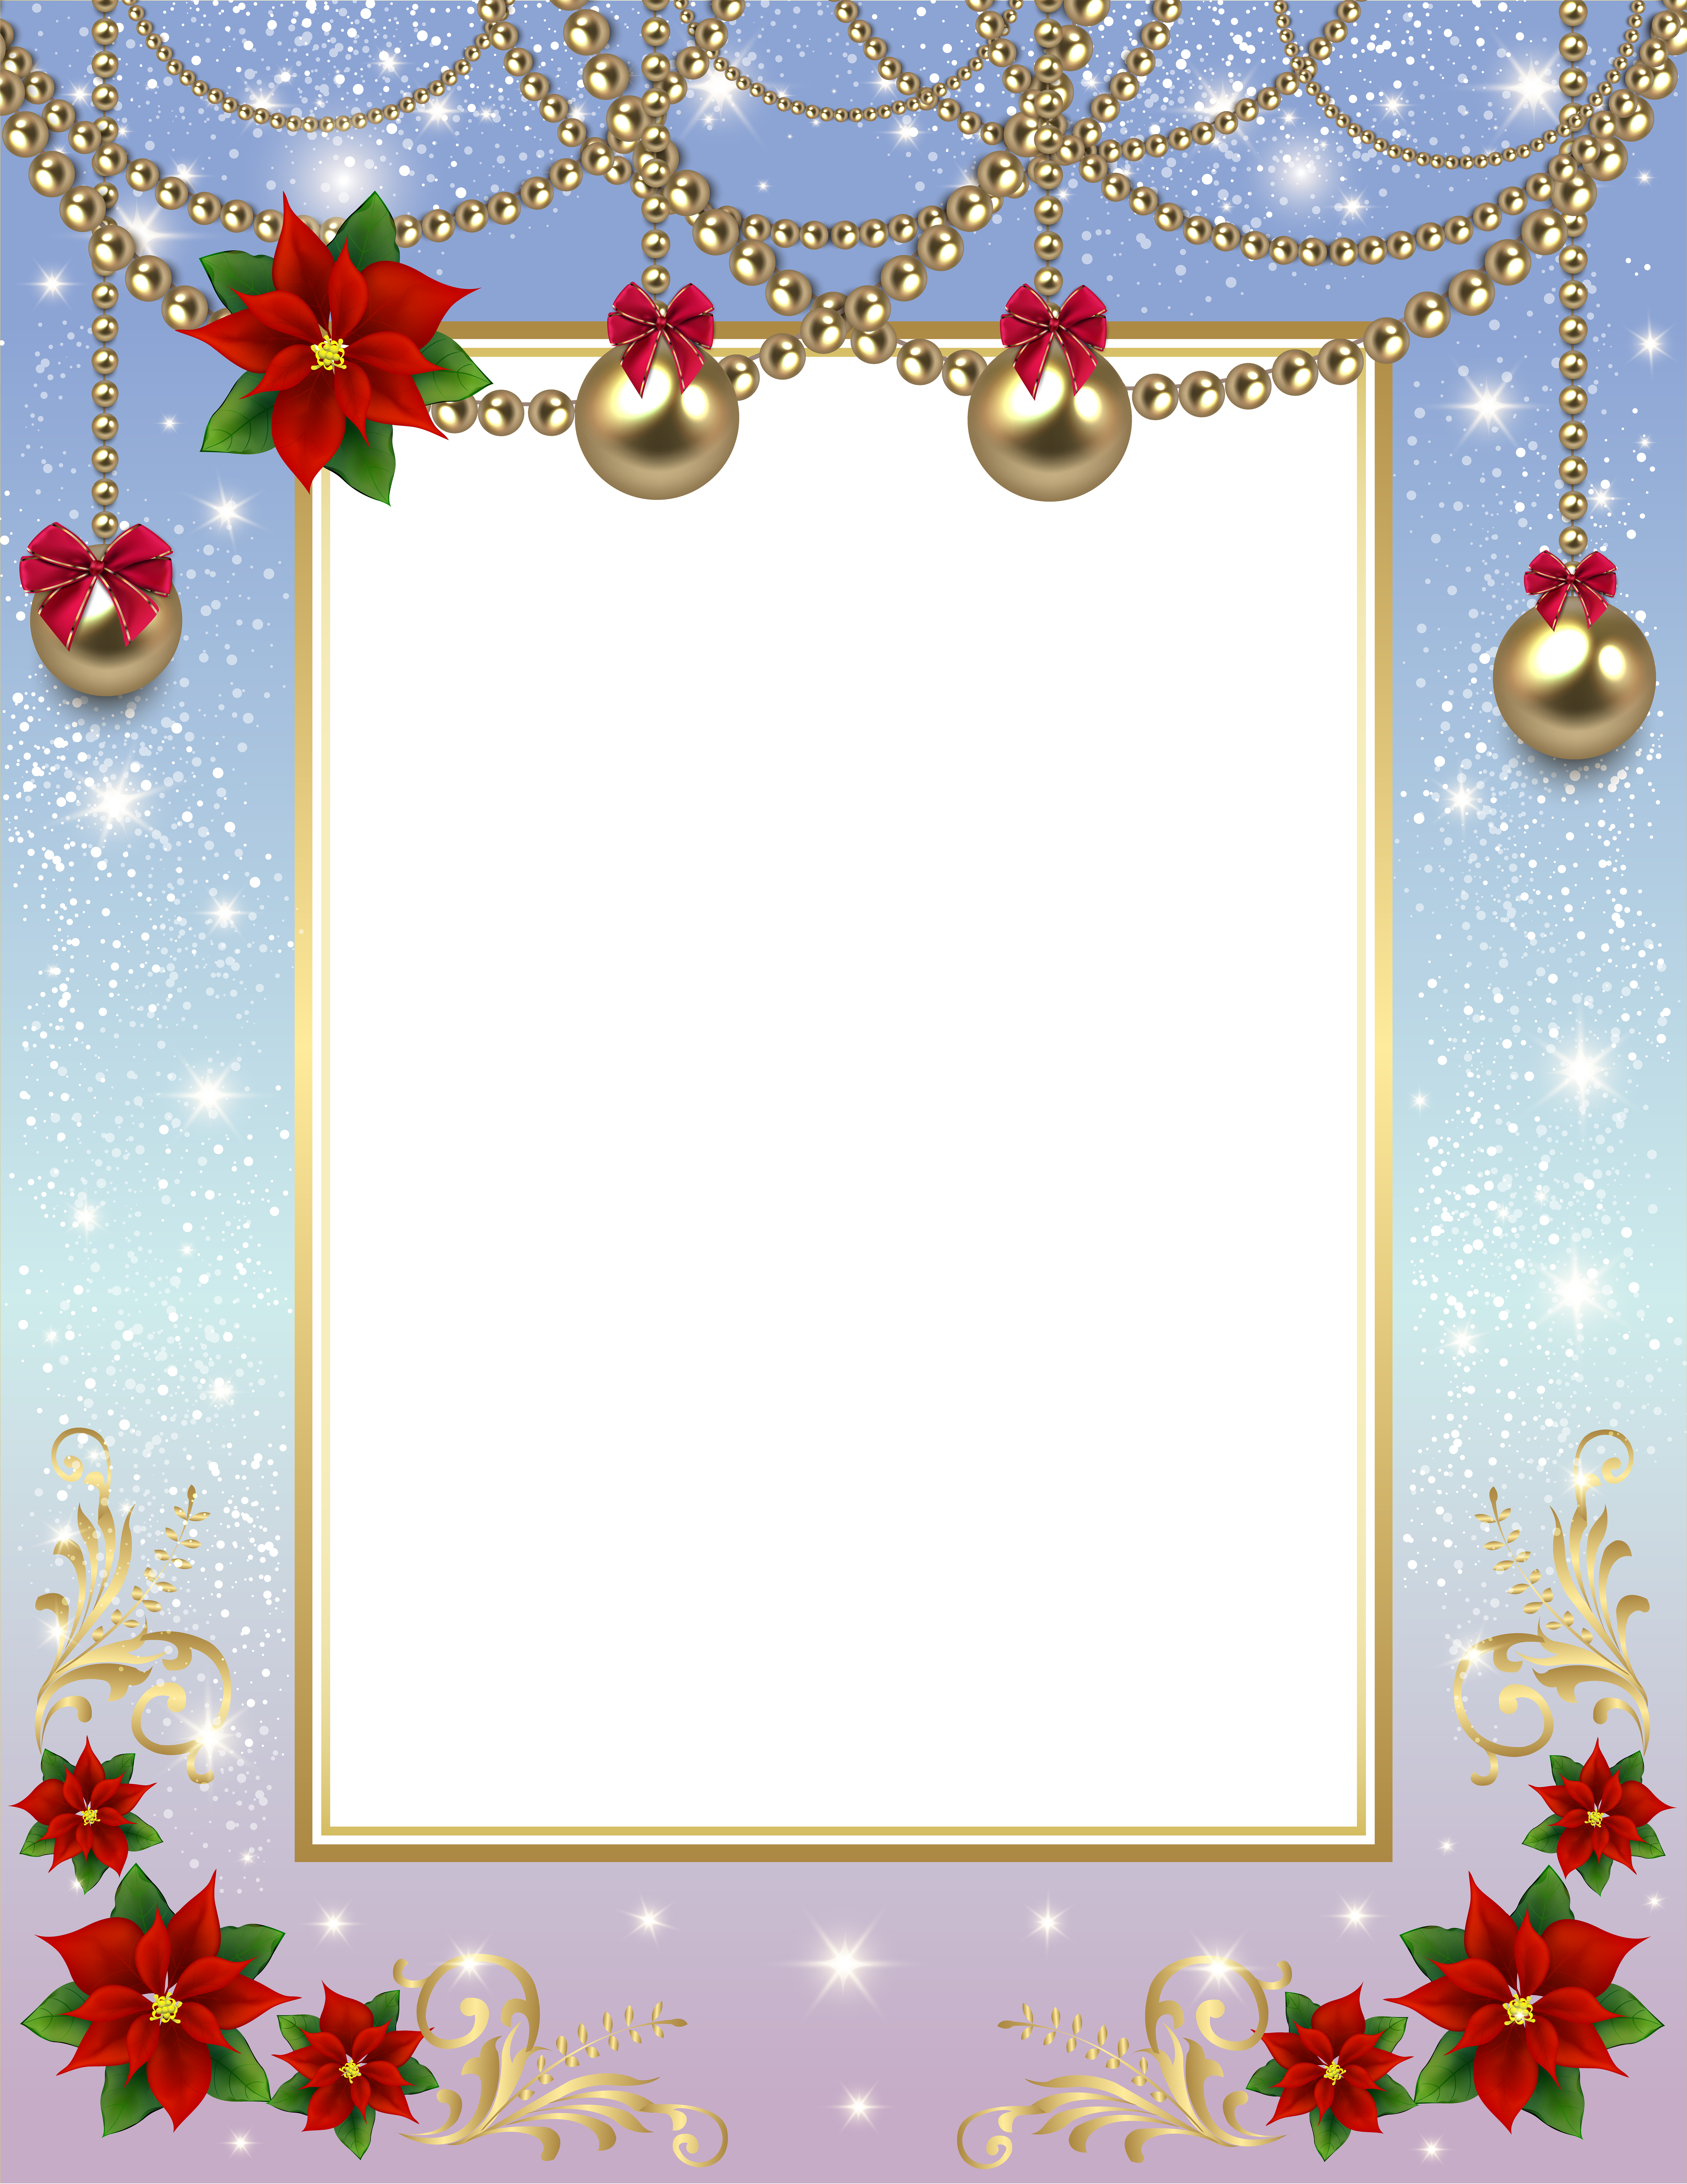 Clipart winter frame. Christmas transparent png photo